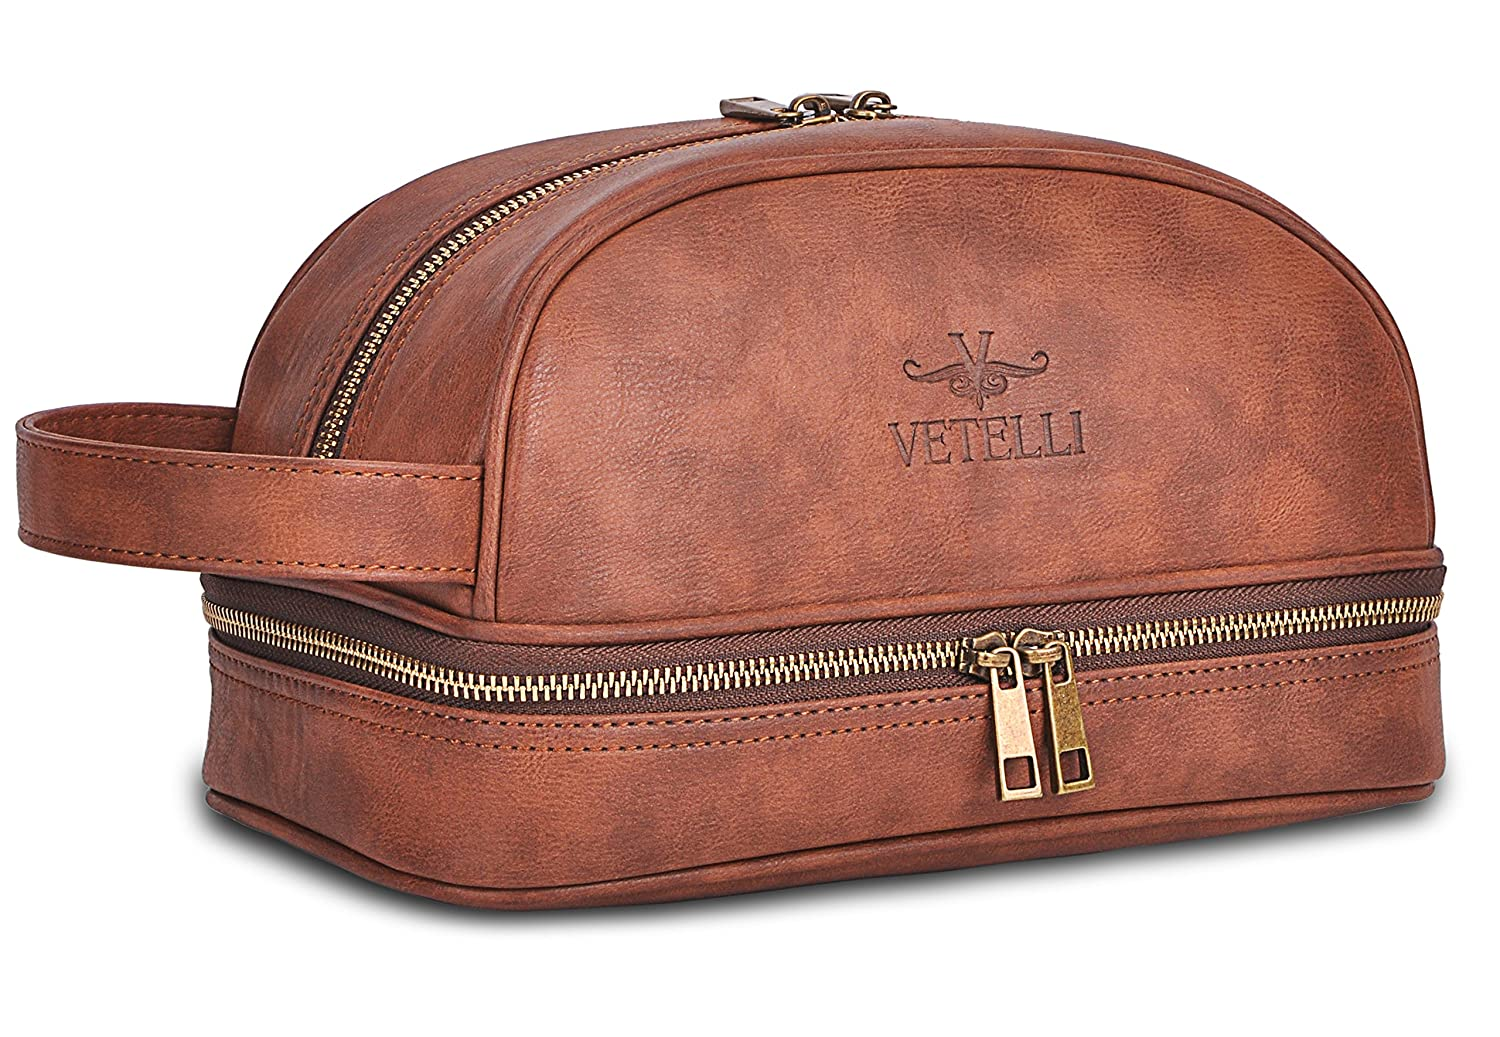 Details about Vetelli Men s Leather Toilet   Toiletry Bag (Dopp Kit, Wash  Bag) with Travel. 082072c053